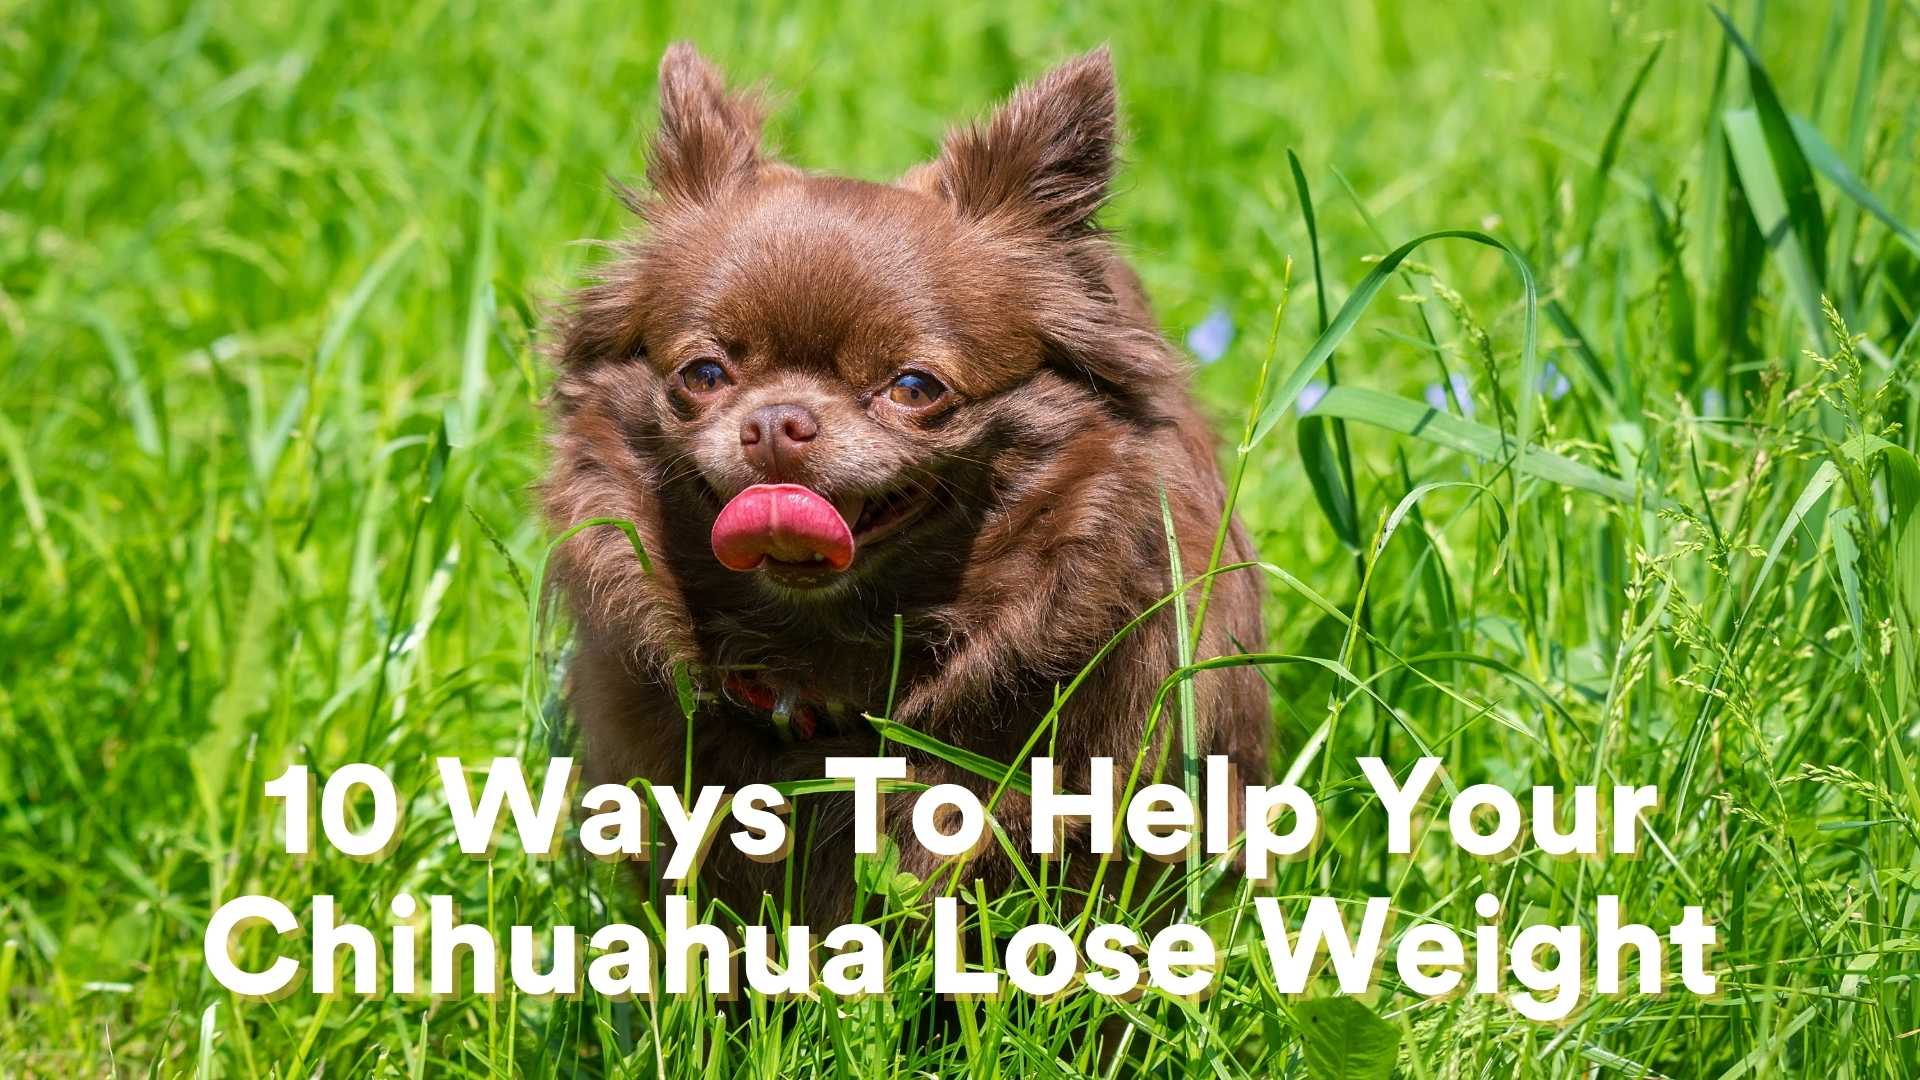 10 Ways to Help Your Chihuahua Lose Weight